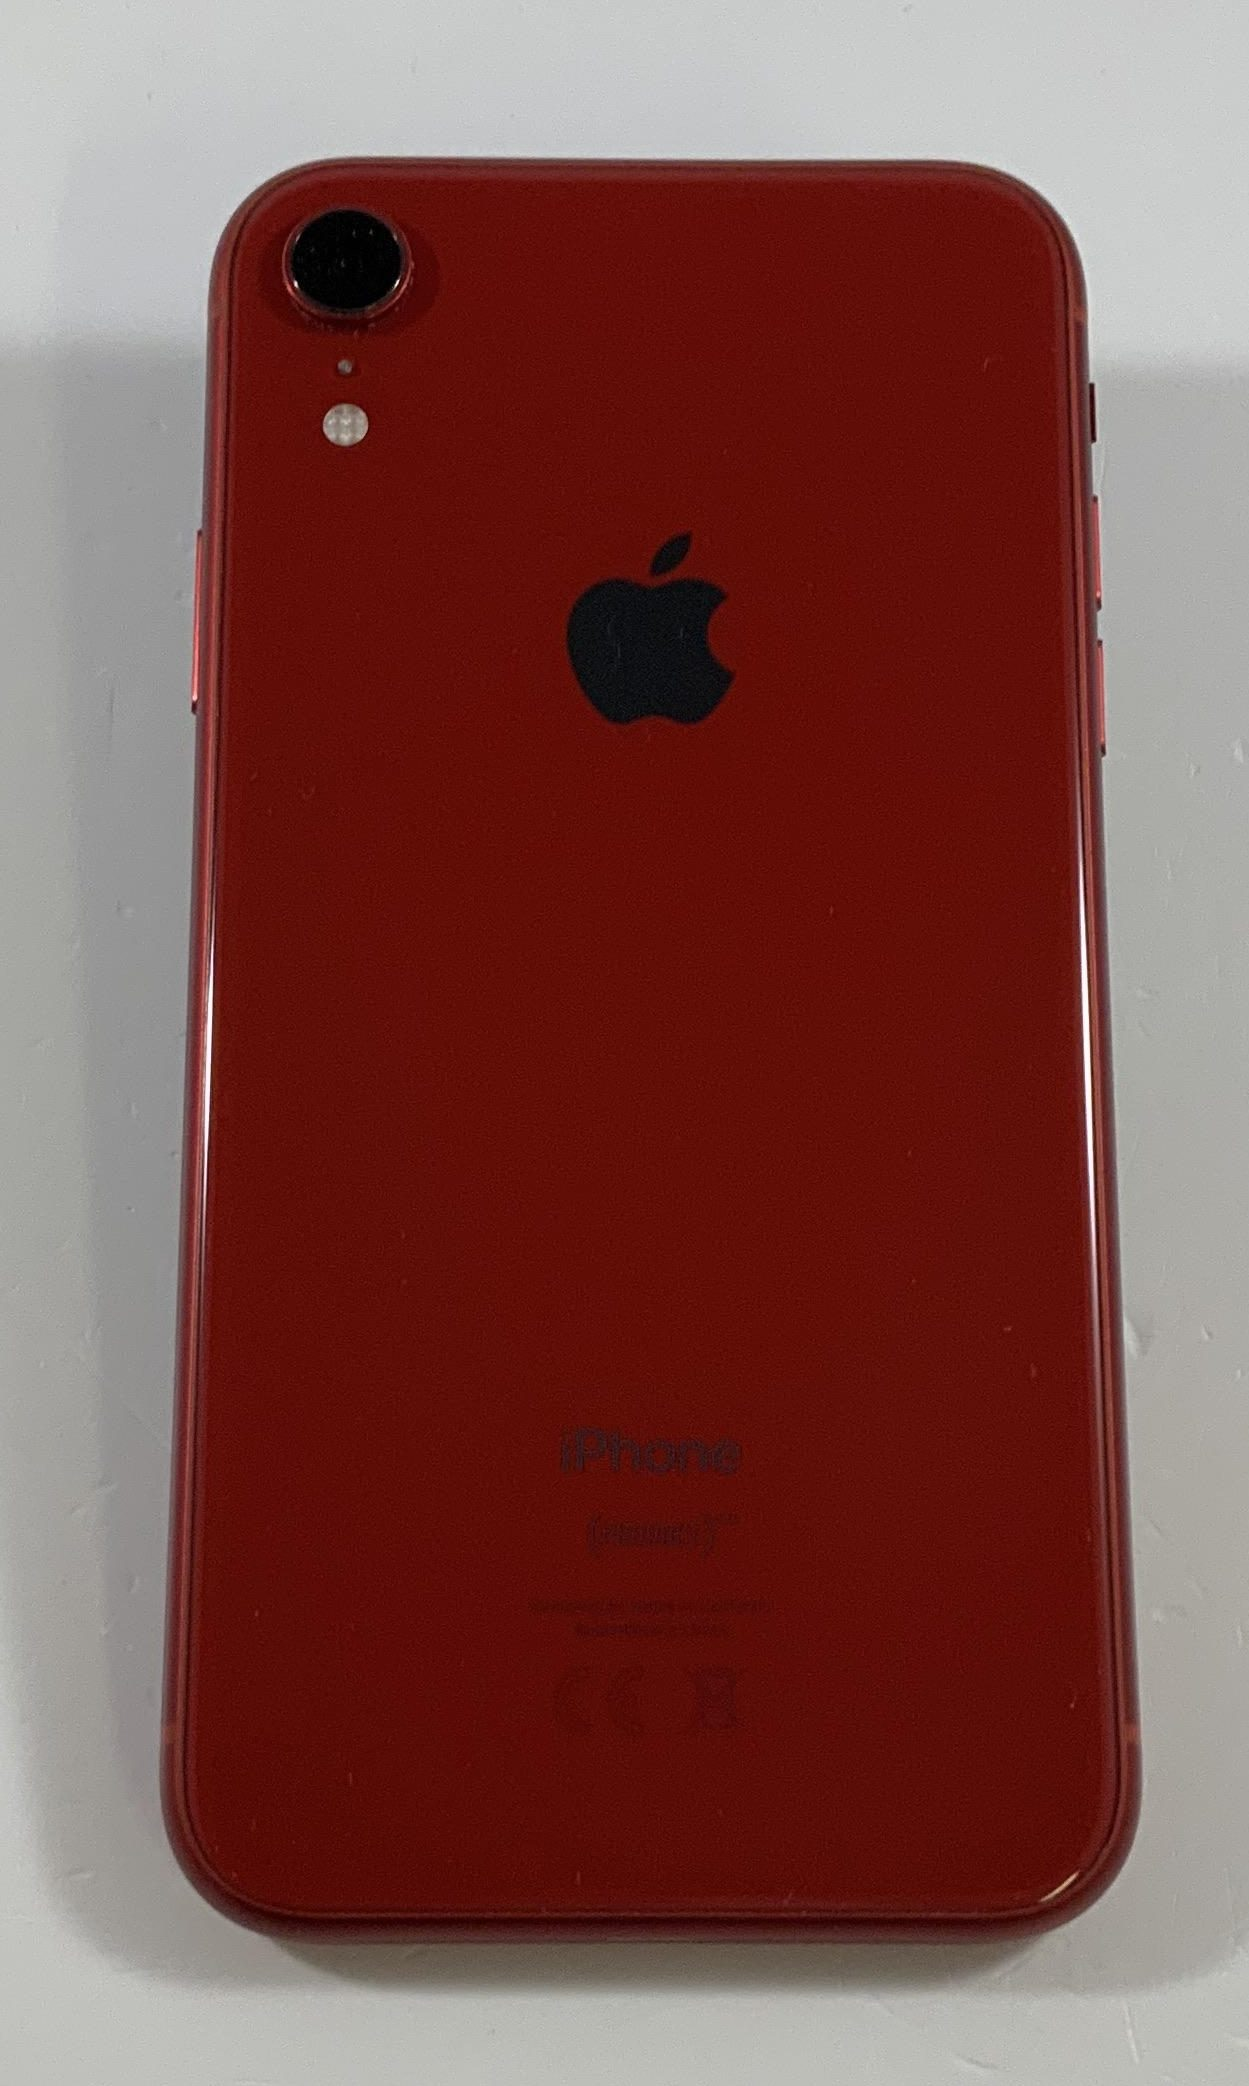 iPhone XR 64GB, 64GB, Red, Bild 2